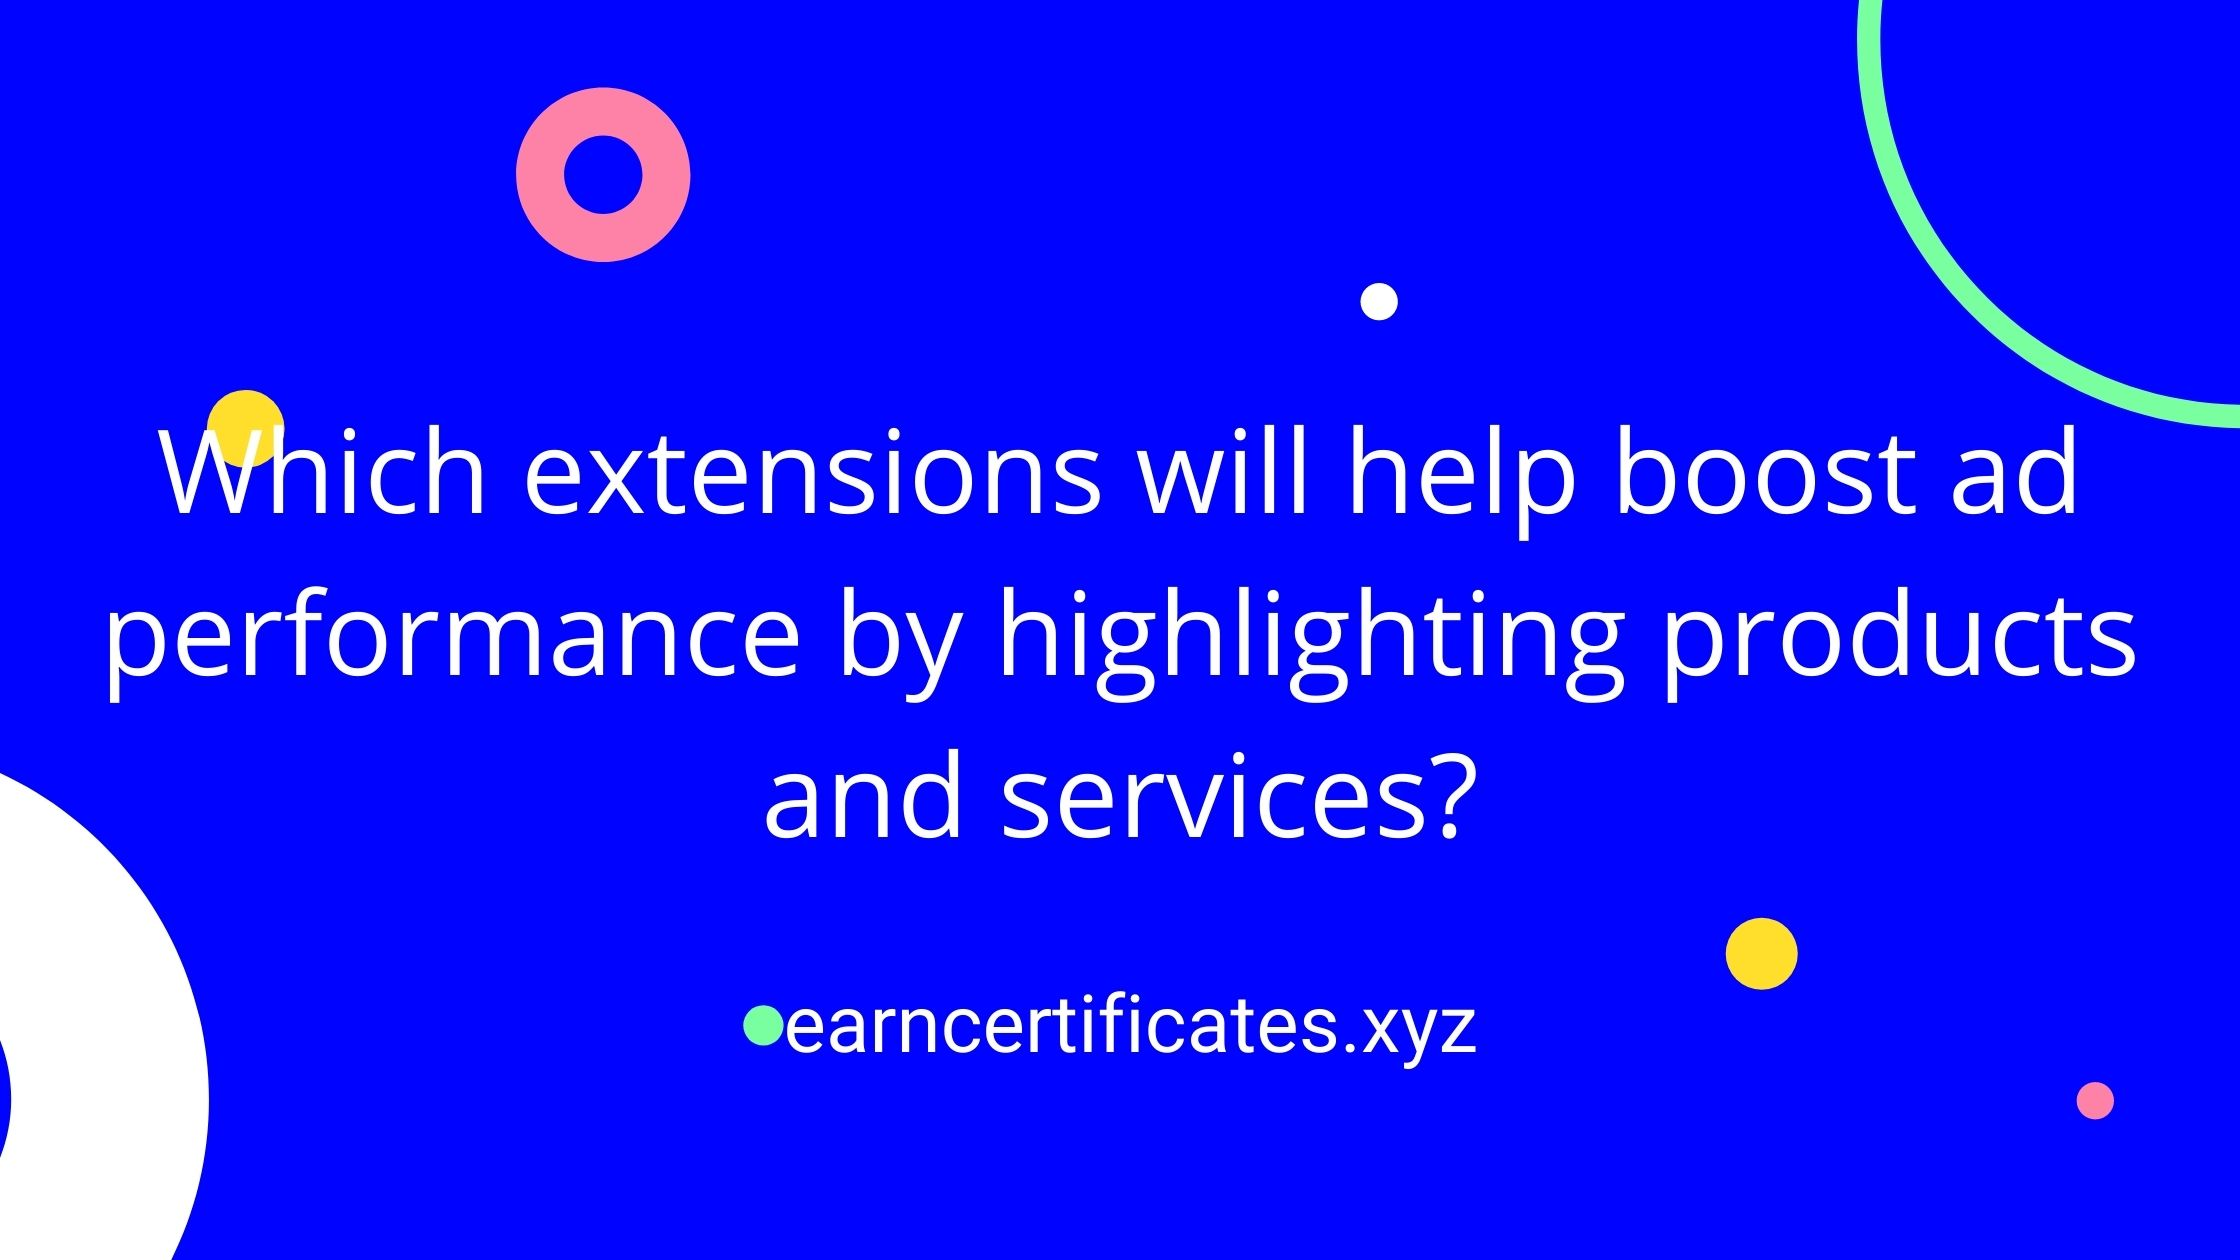 Which extensions will help boost ad performance by highlighting products and services?